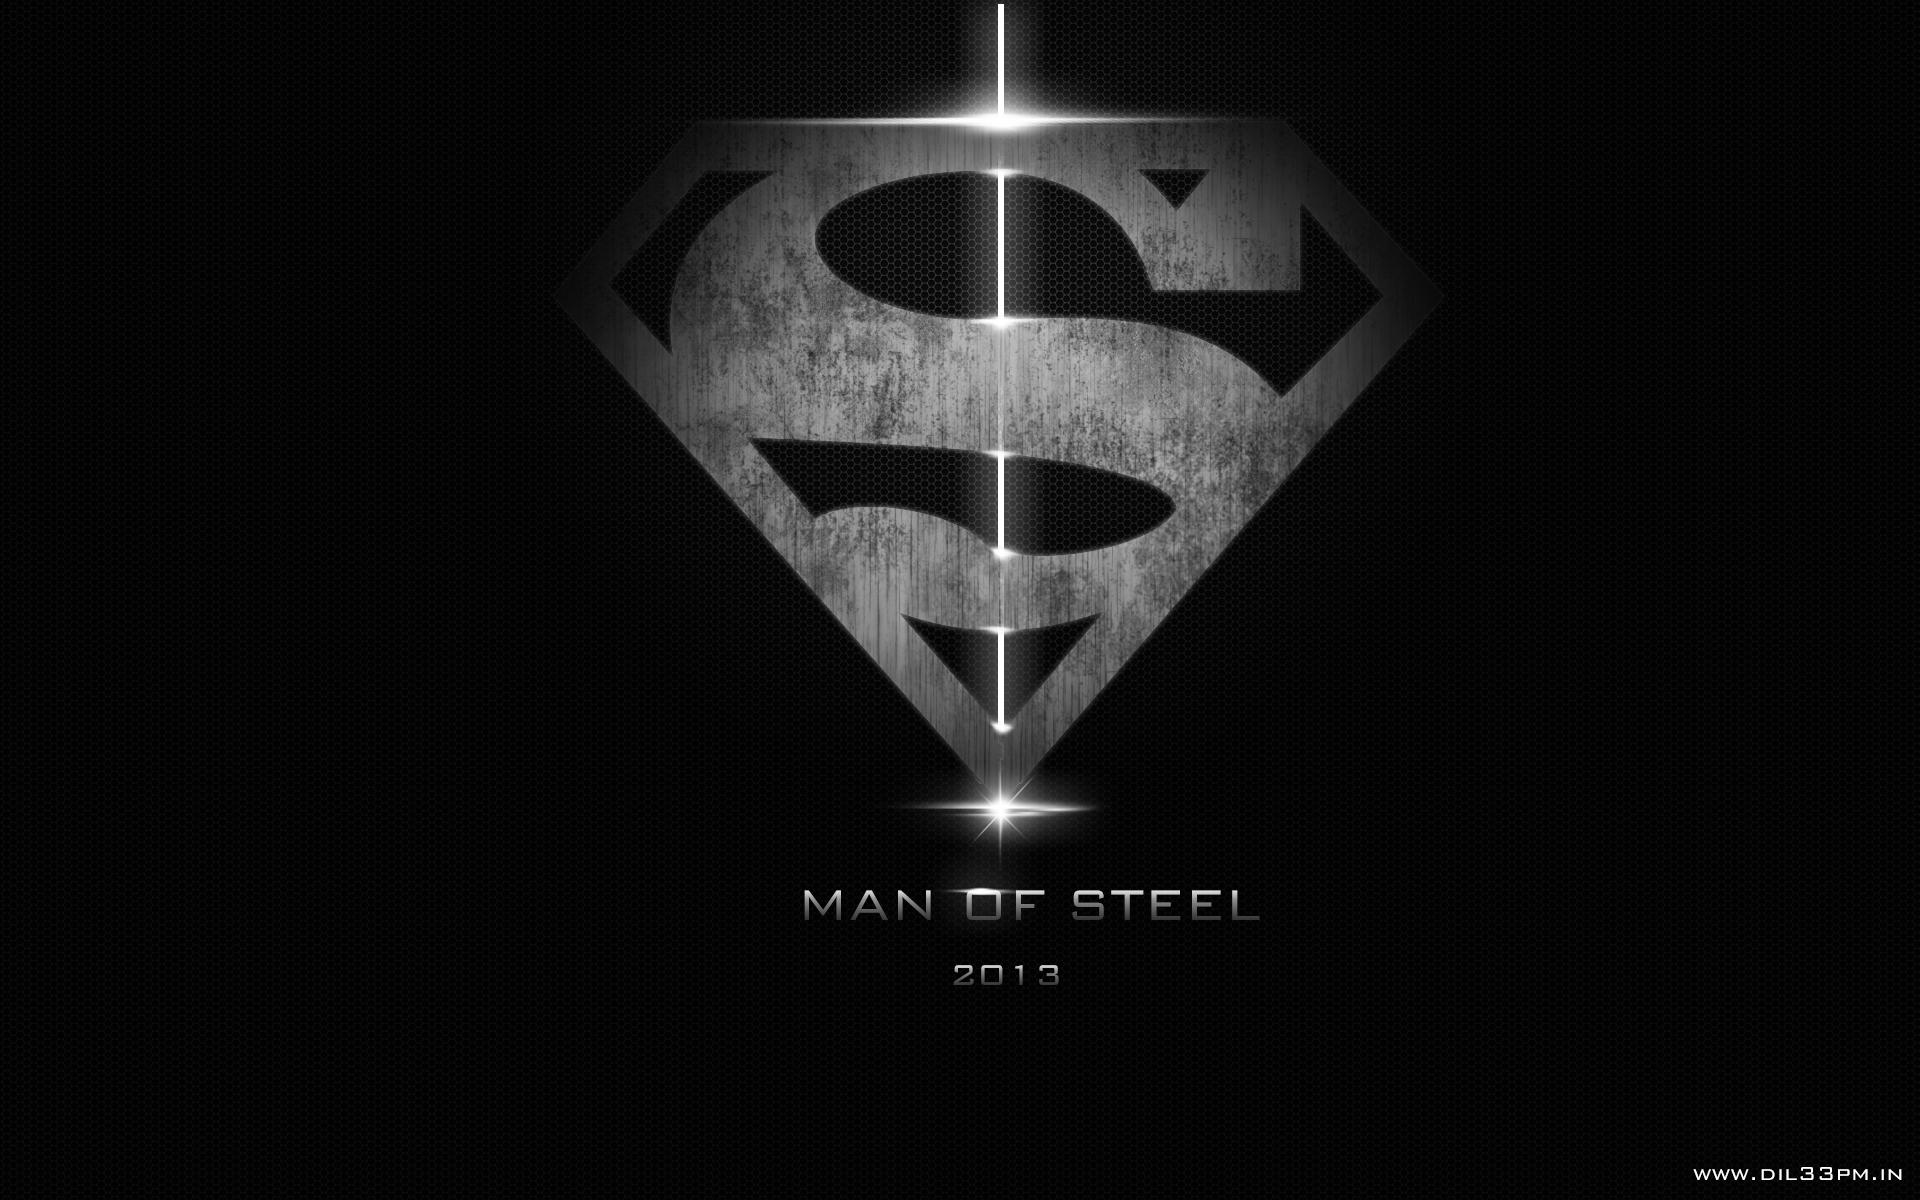 Man of steel desktop backgrounds wallpaper cave man of steel logo background wallpaper free hd 3d desktop wallpapers download voltagebd